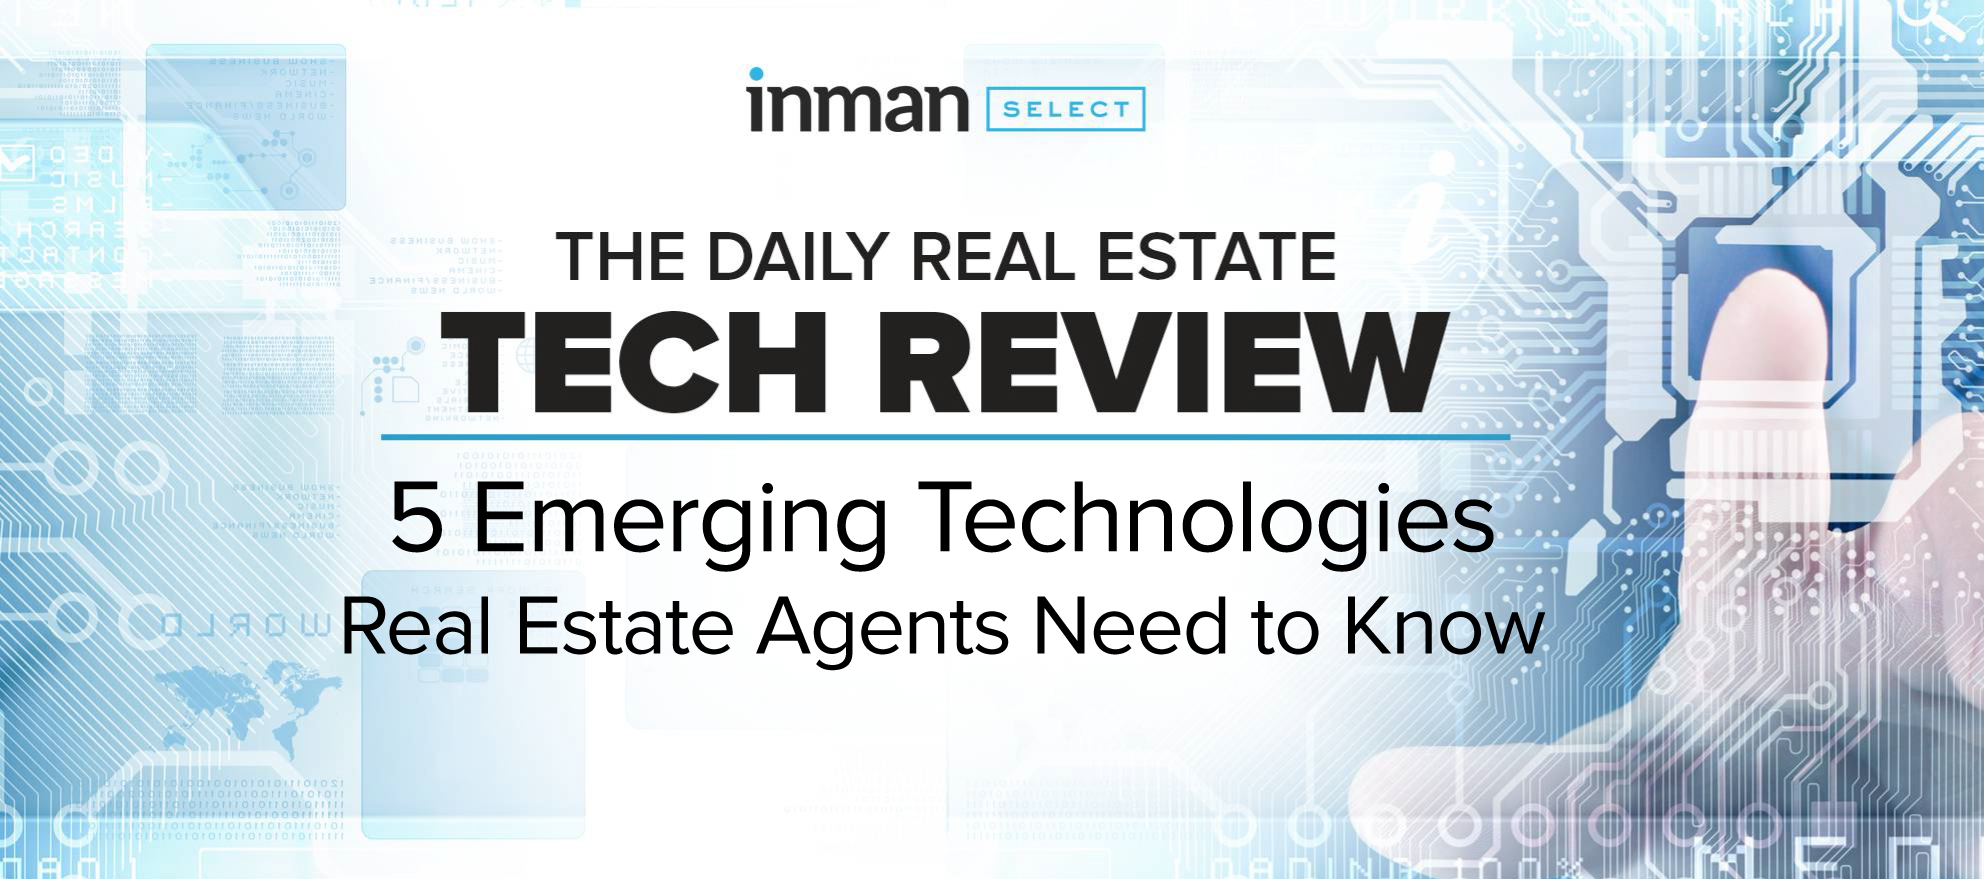 5 emerging technologies real estate agents need to know